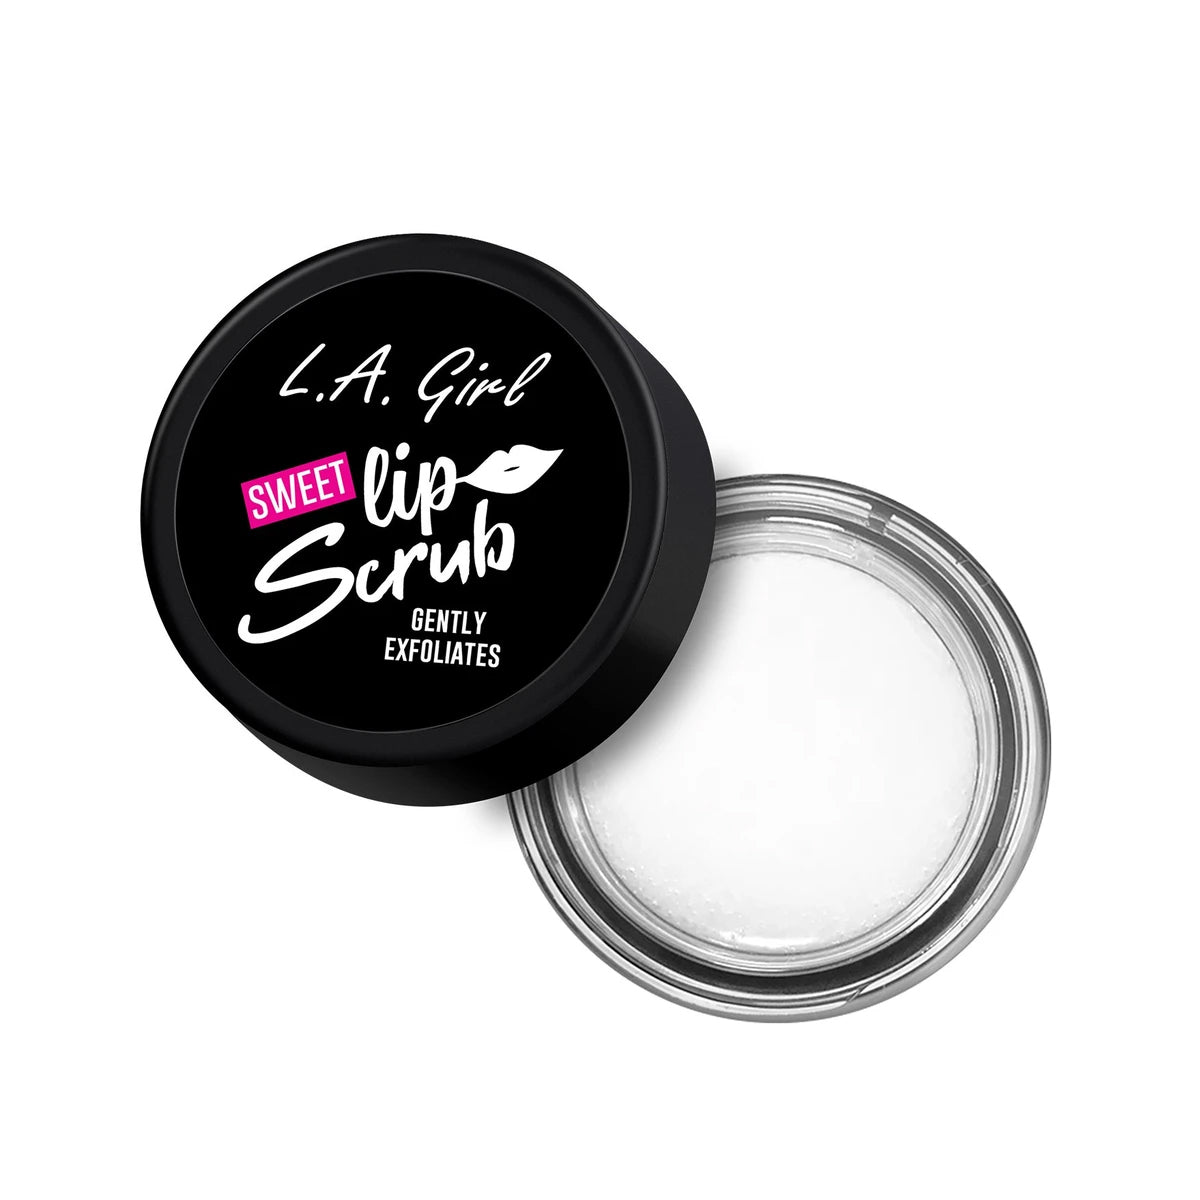 L.A Girl Sweet Lip Scrub